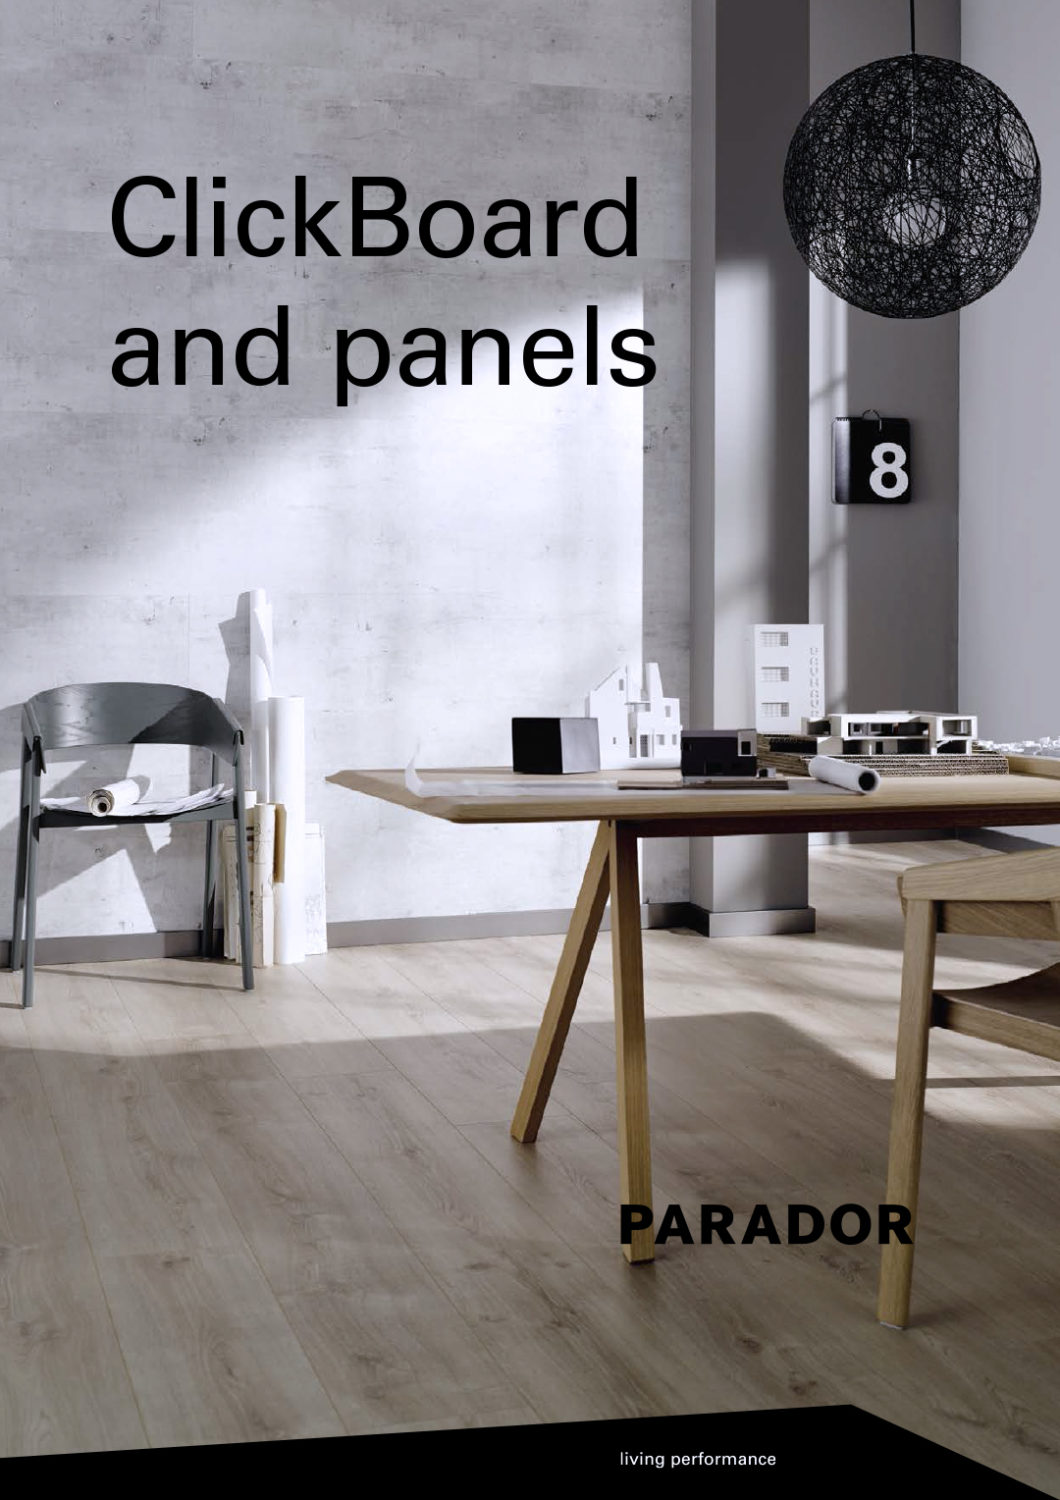 Parador flooring, parquet flooring, vinyl floor, clickpanel, engineered wood floor, laminate floor